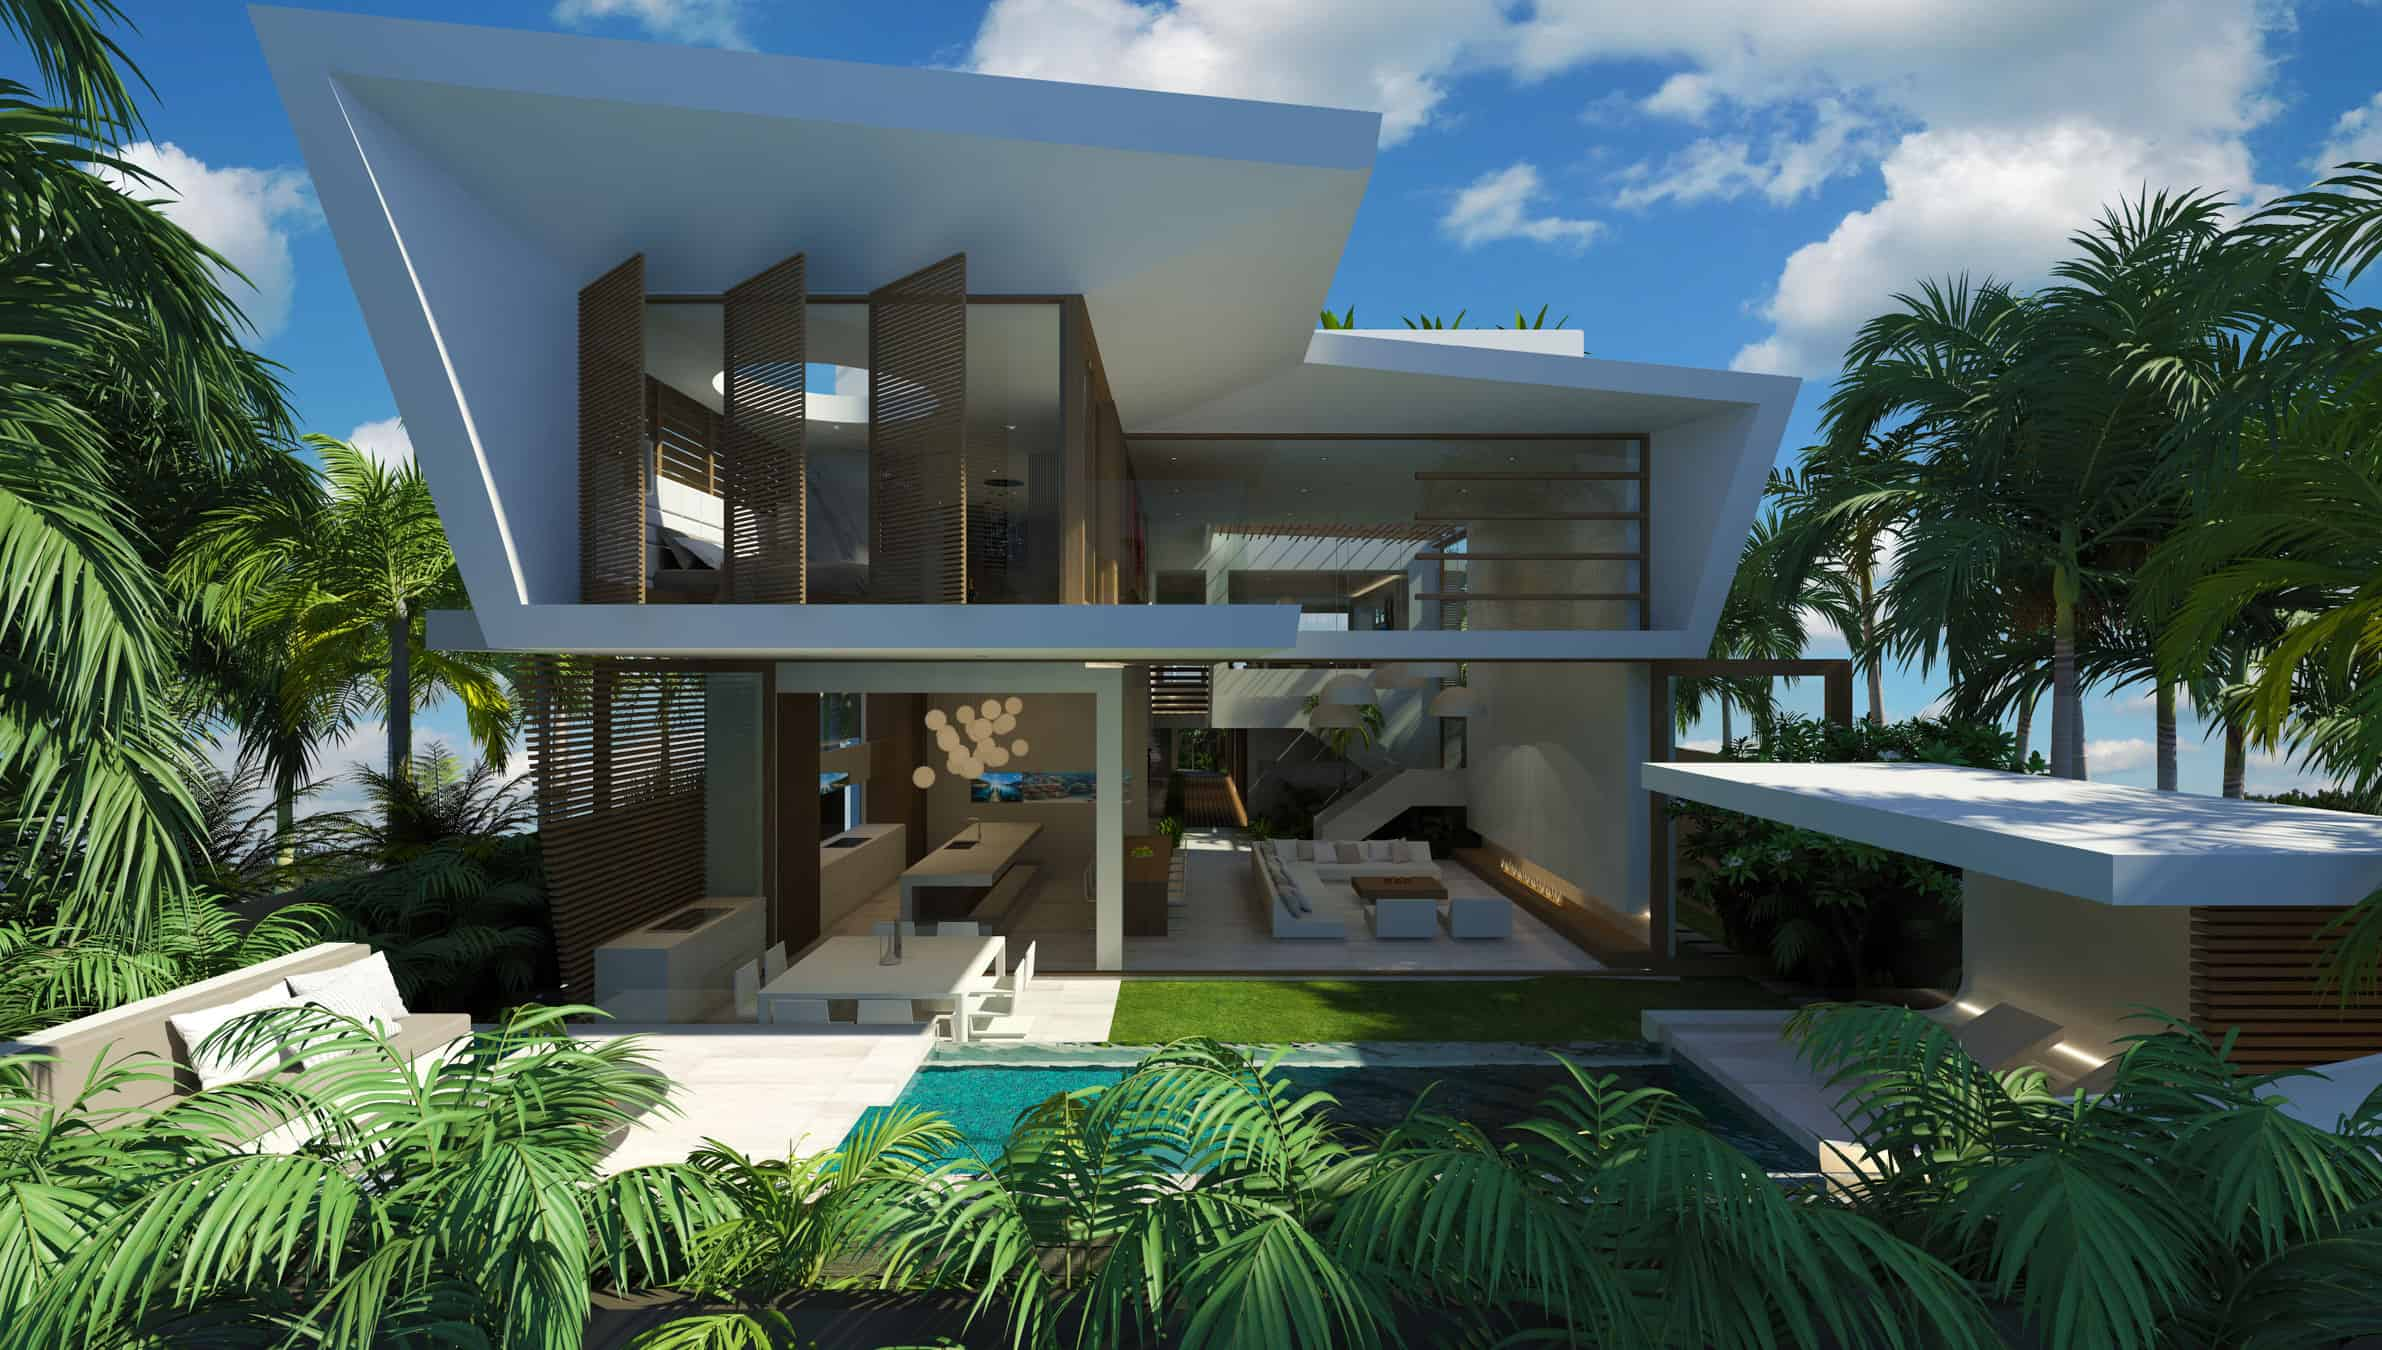 Modern beach house chris clout design for Contemporary beach house interior design